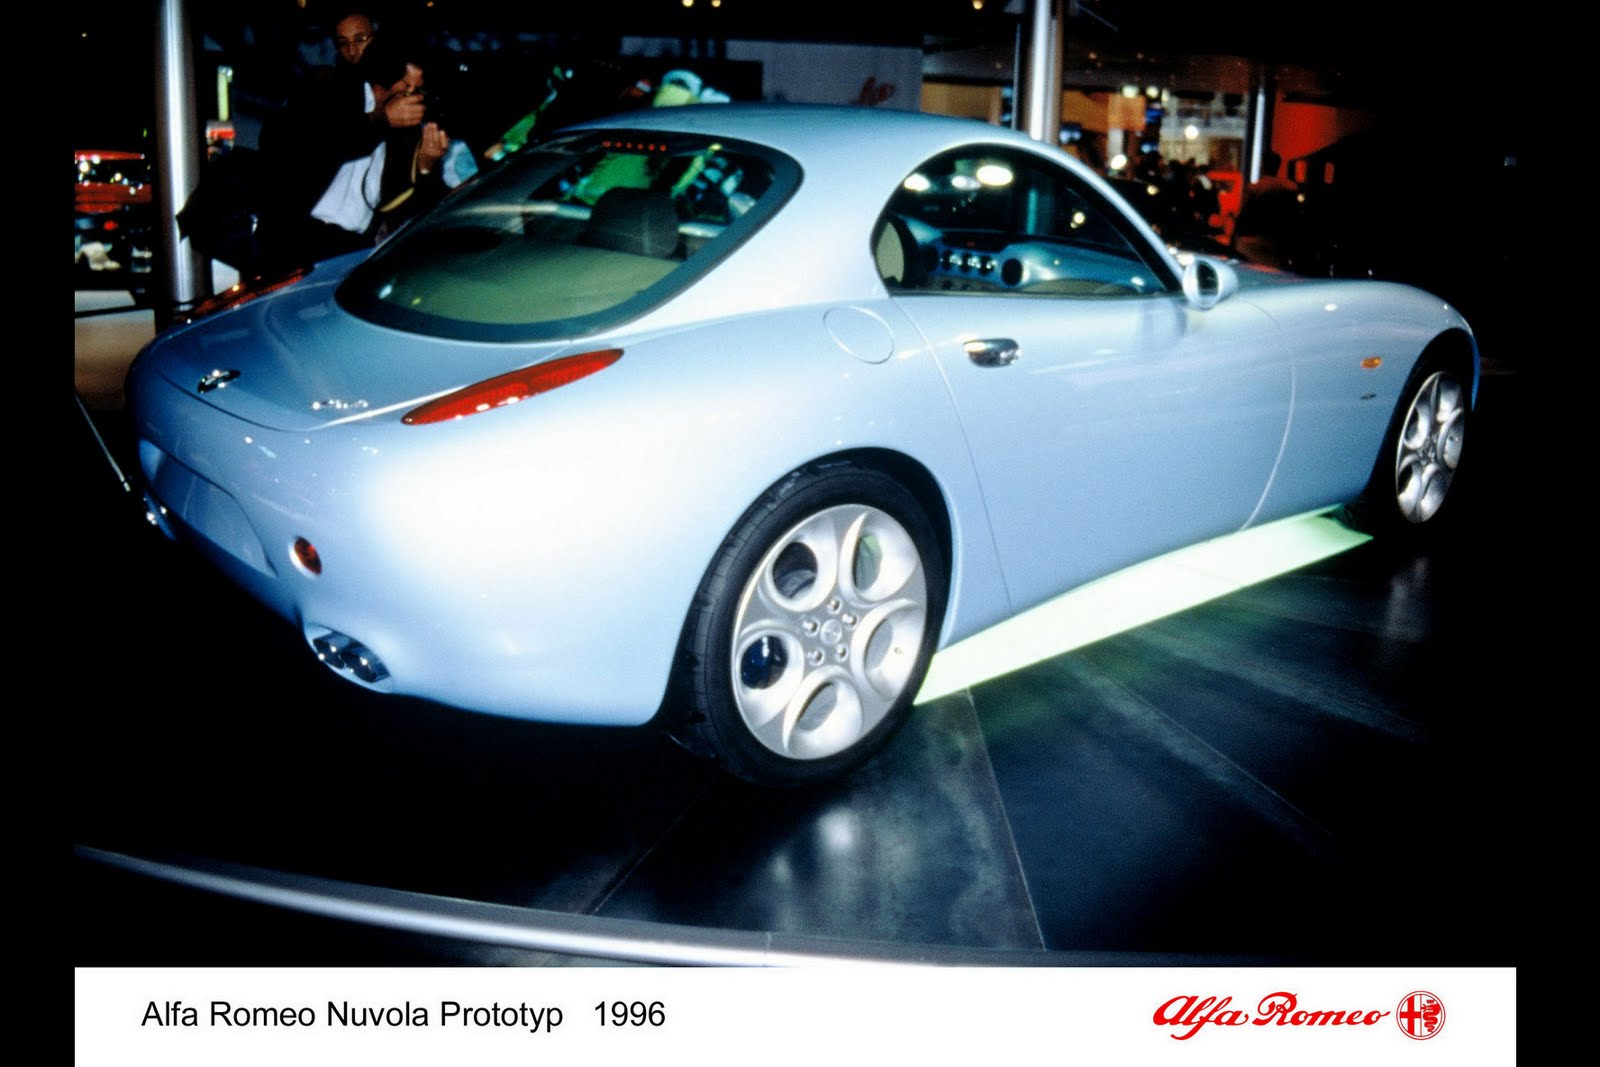 Alfa romeo nuvola photo - 3